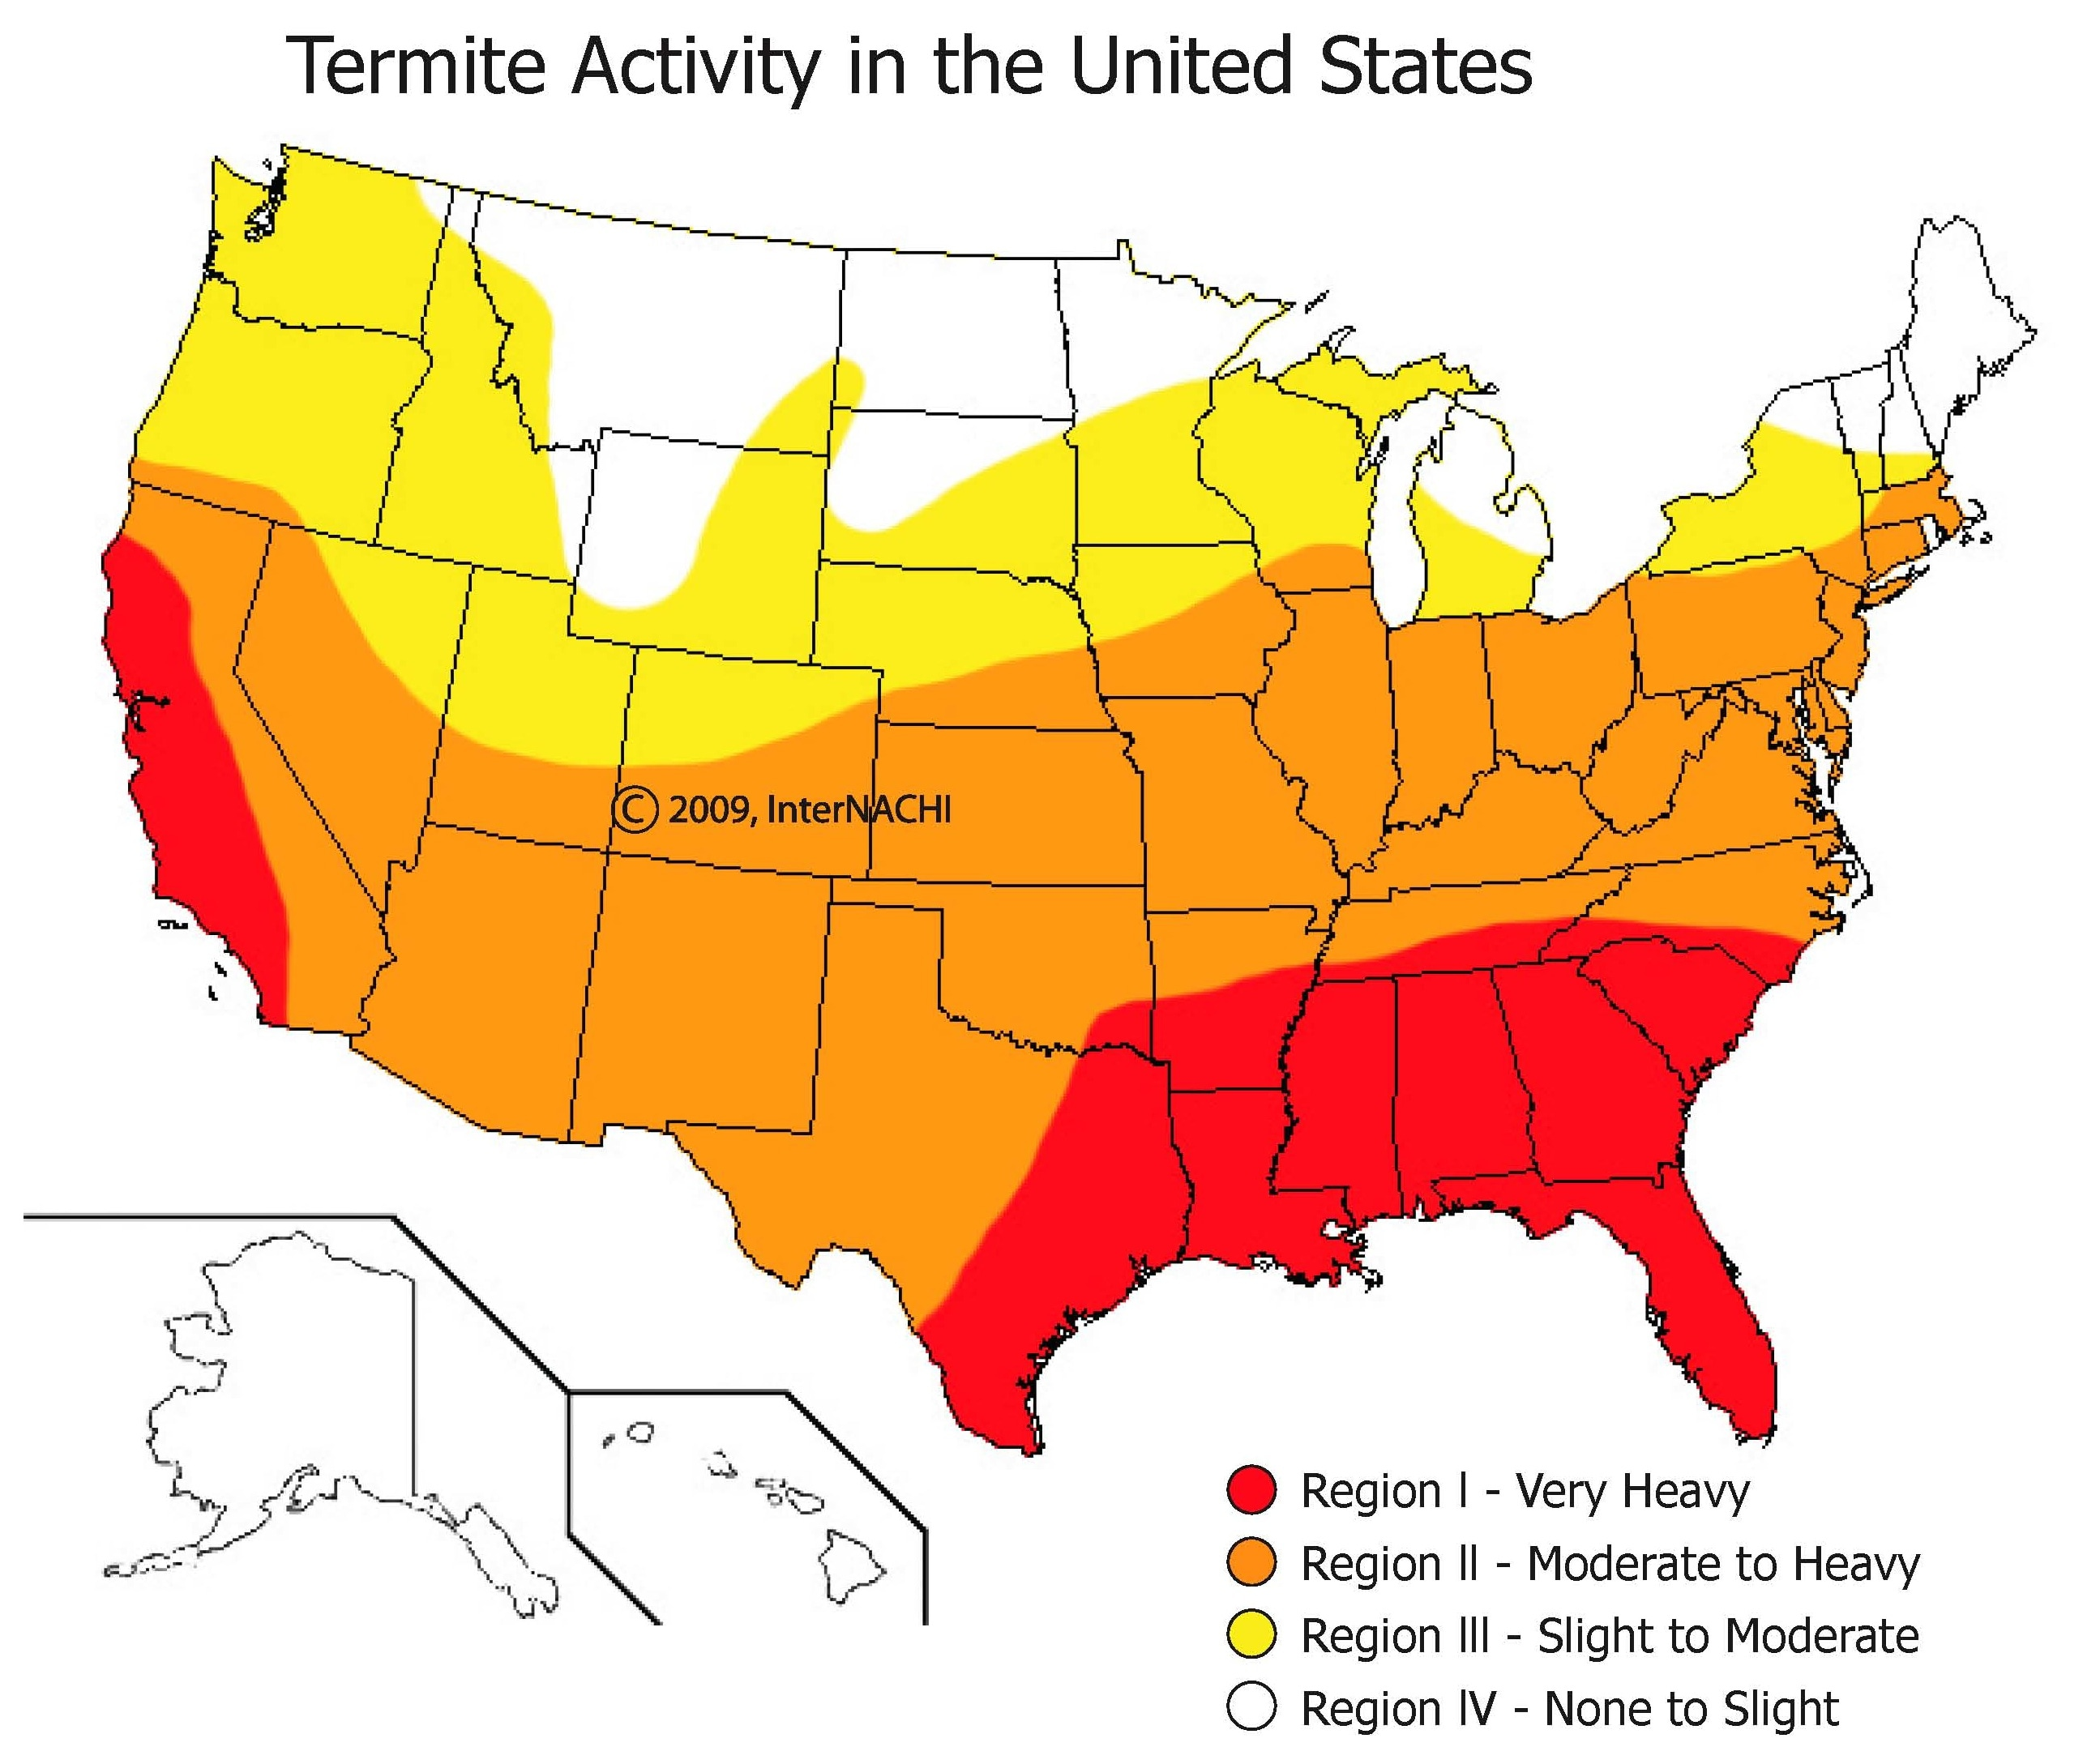 Termite activity in the U.S.